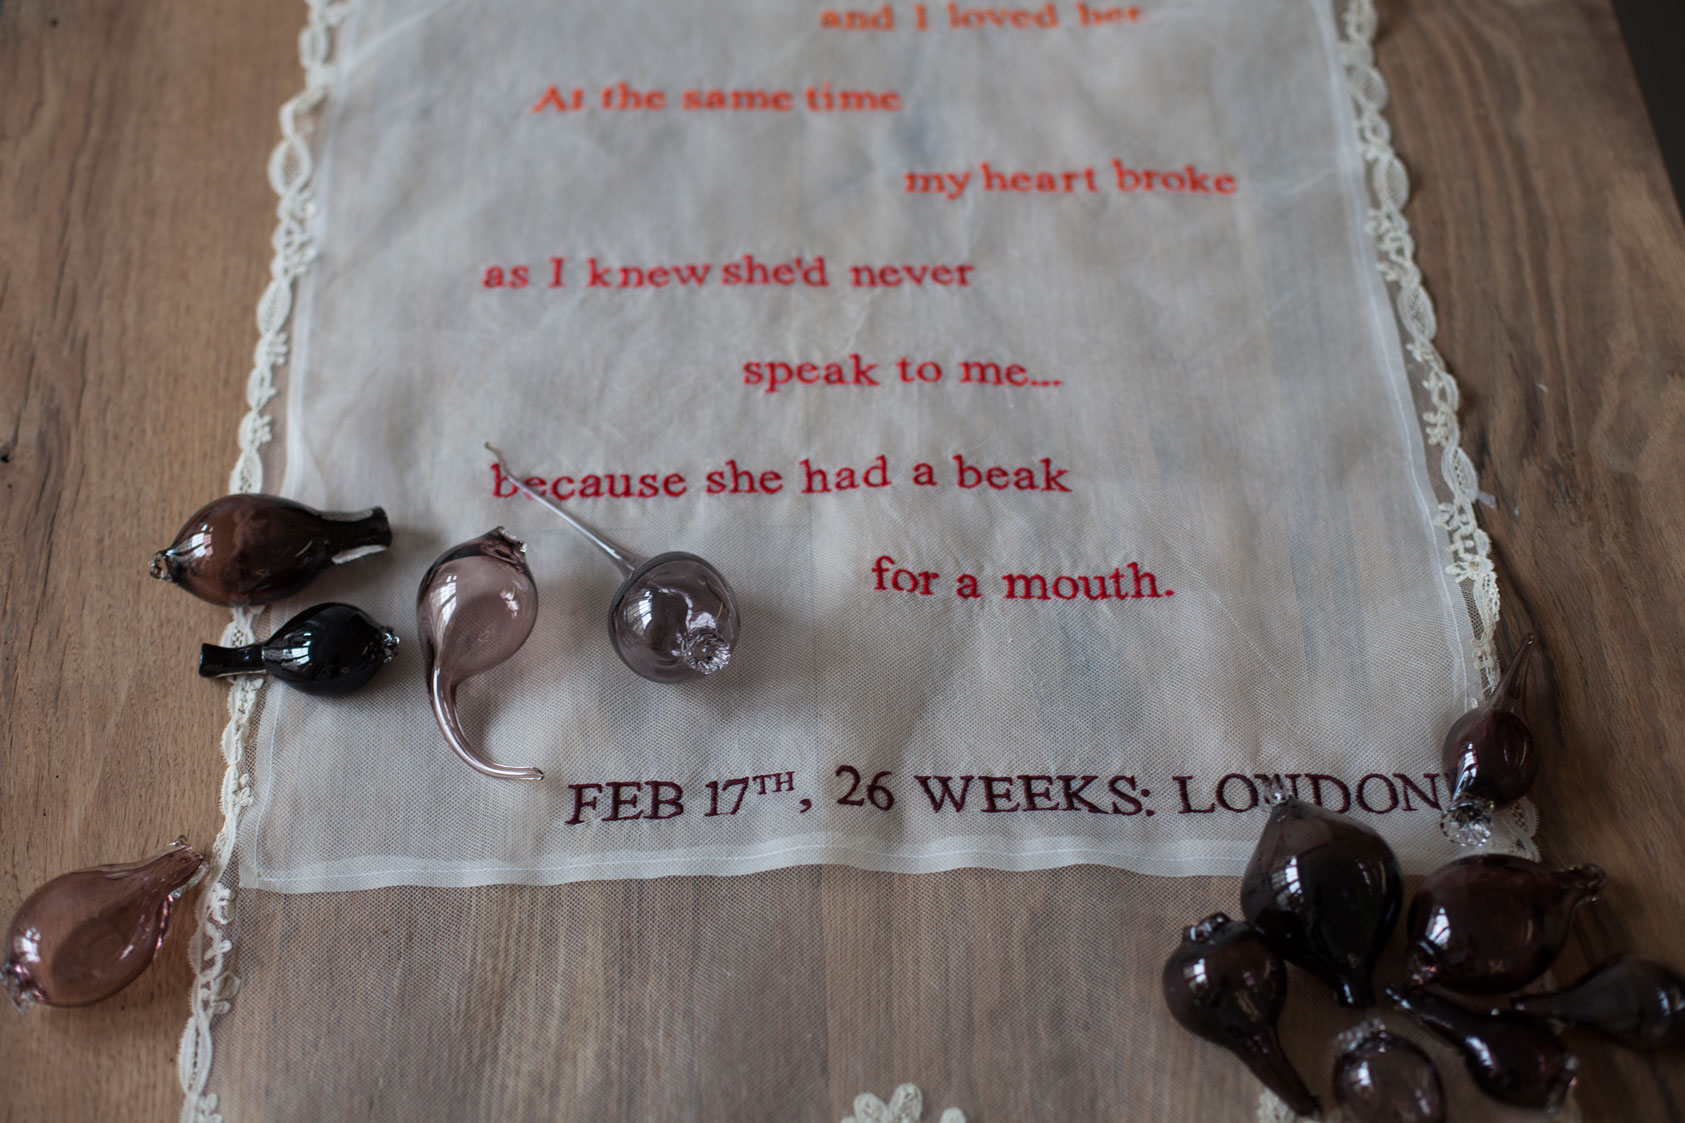 Installation art close-up of feminine lace colorfully embroidered with a poem laid on top of a rustic farm table with accents of hand blown glass filled with sand.